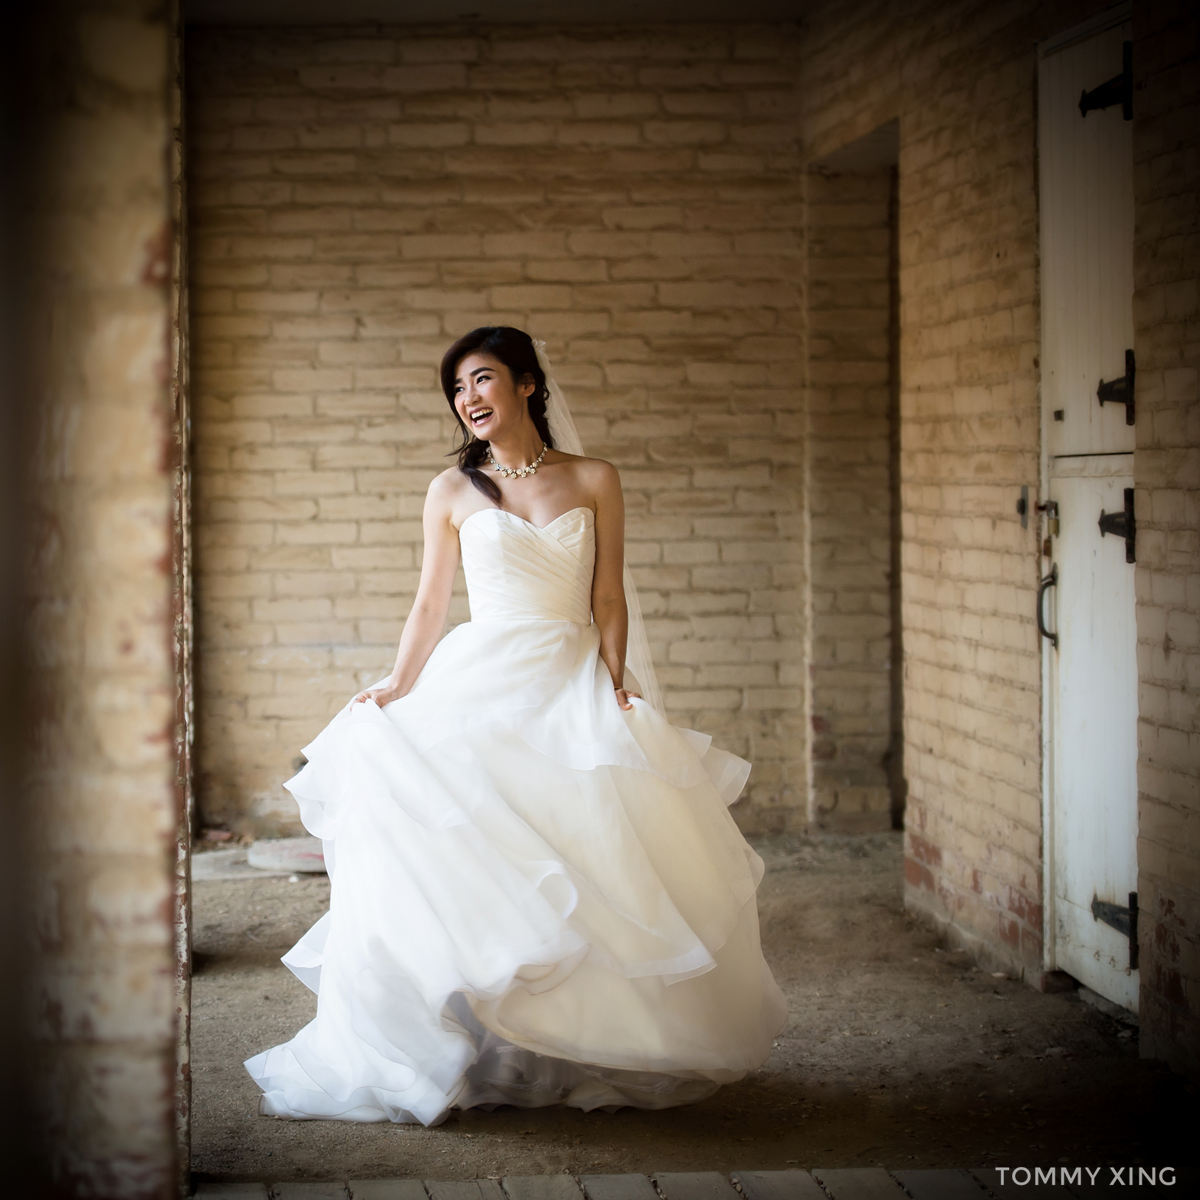 Los Angeles Engagement & pre wedding photography- 洛杉矶婚纱照 - Tommy Xing19.jpg